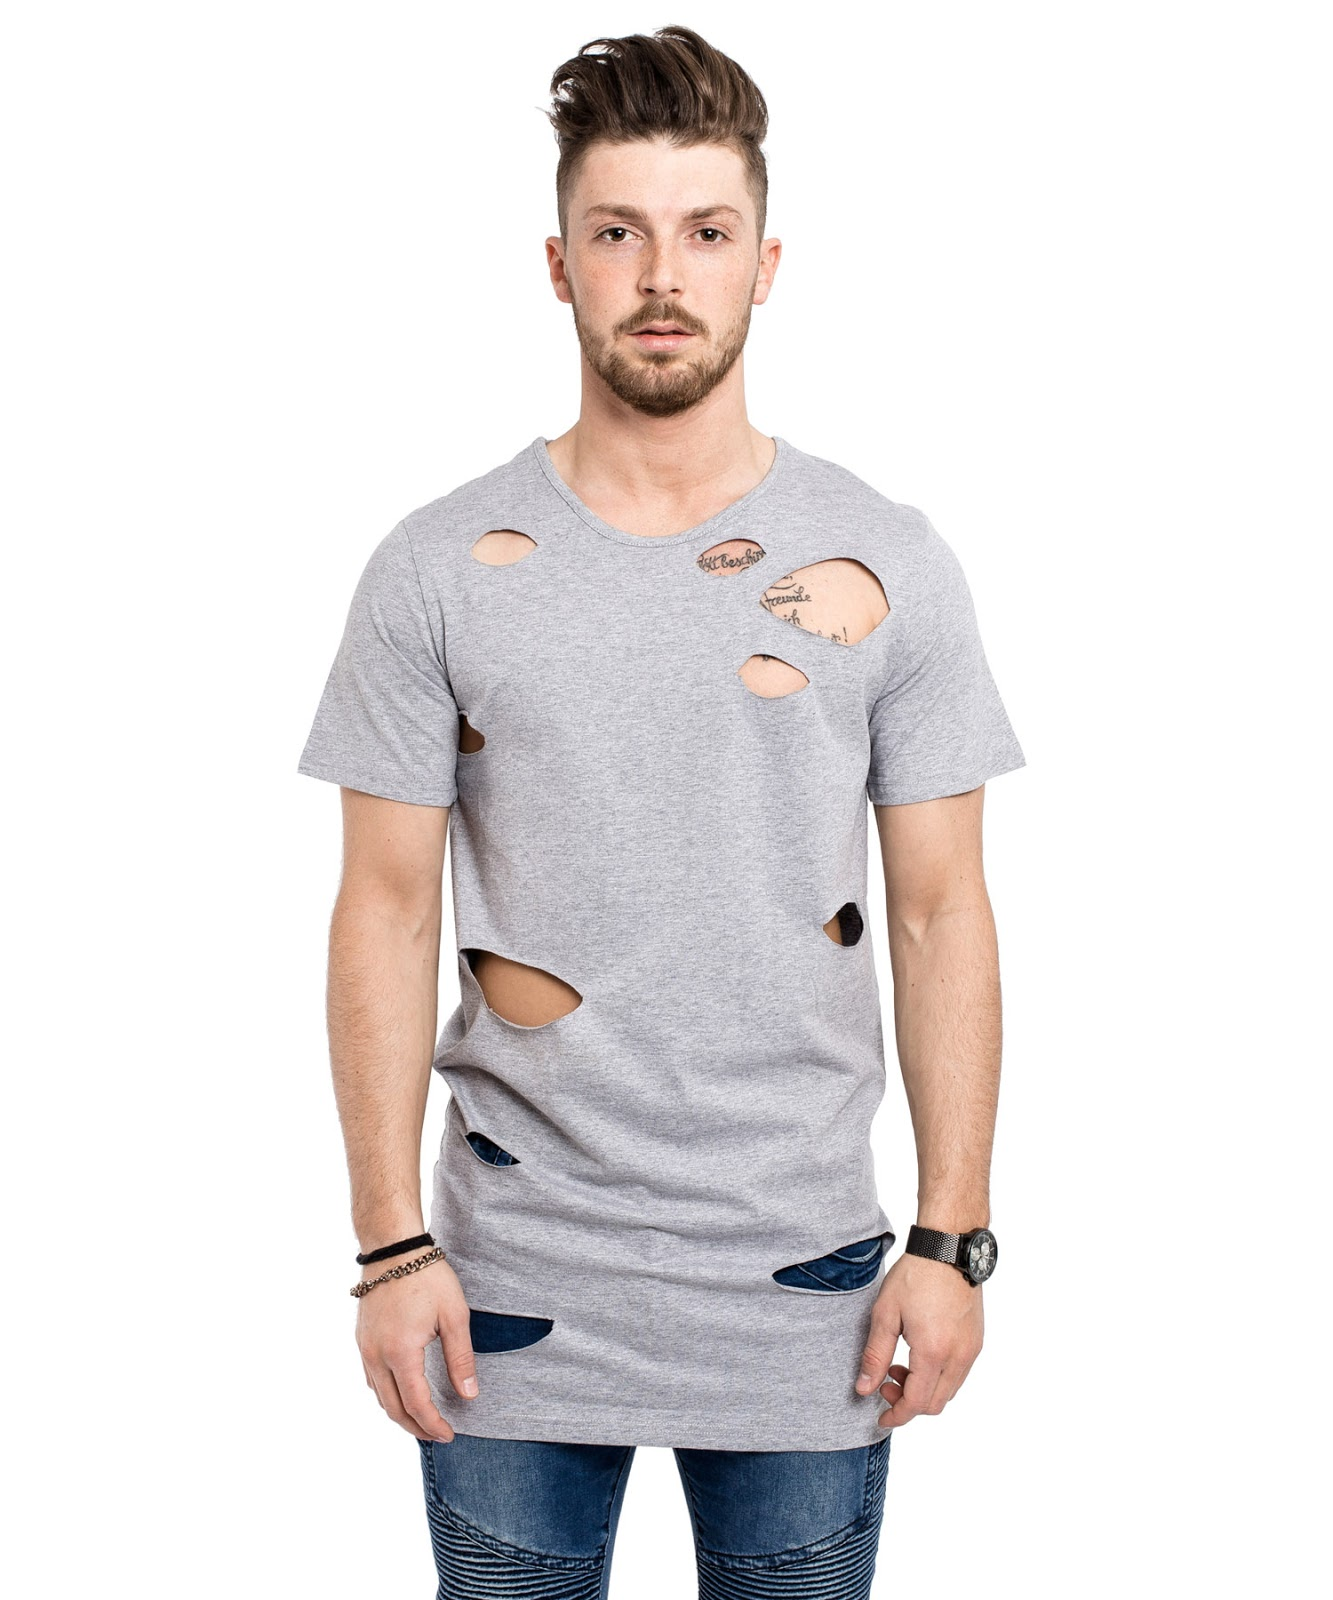 Camiseta Destroyed Masculina